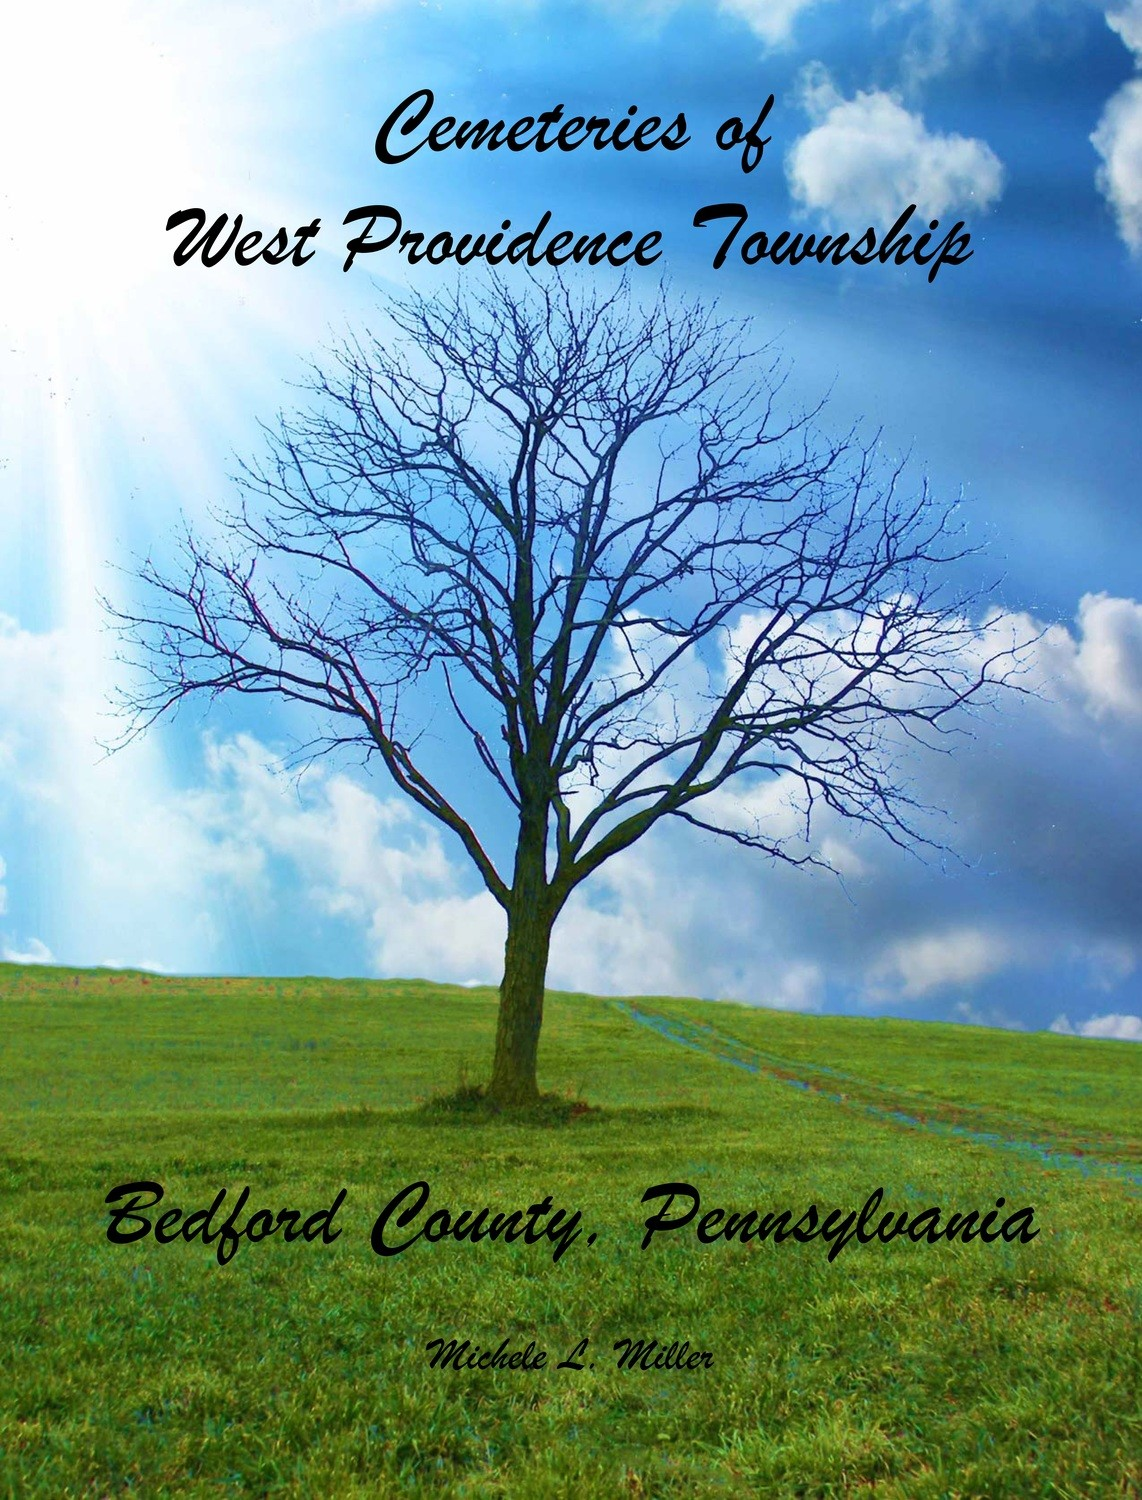 Cemeteries of West Providence Township